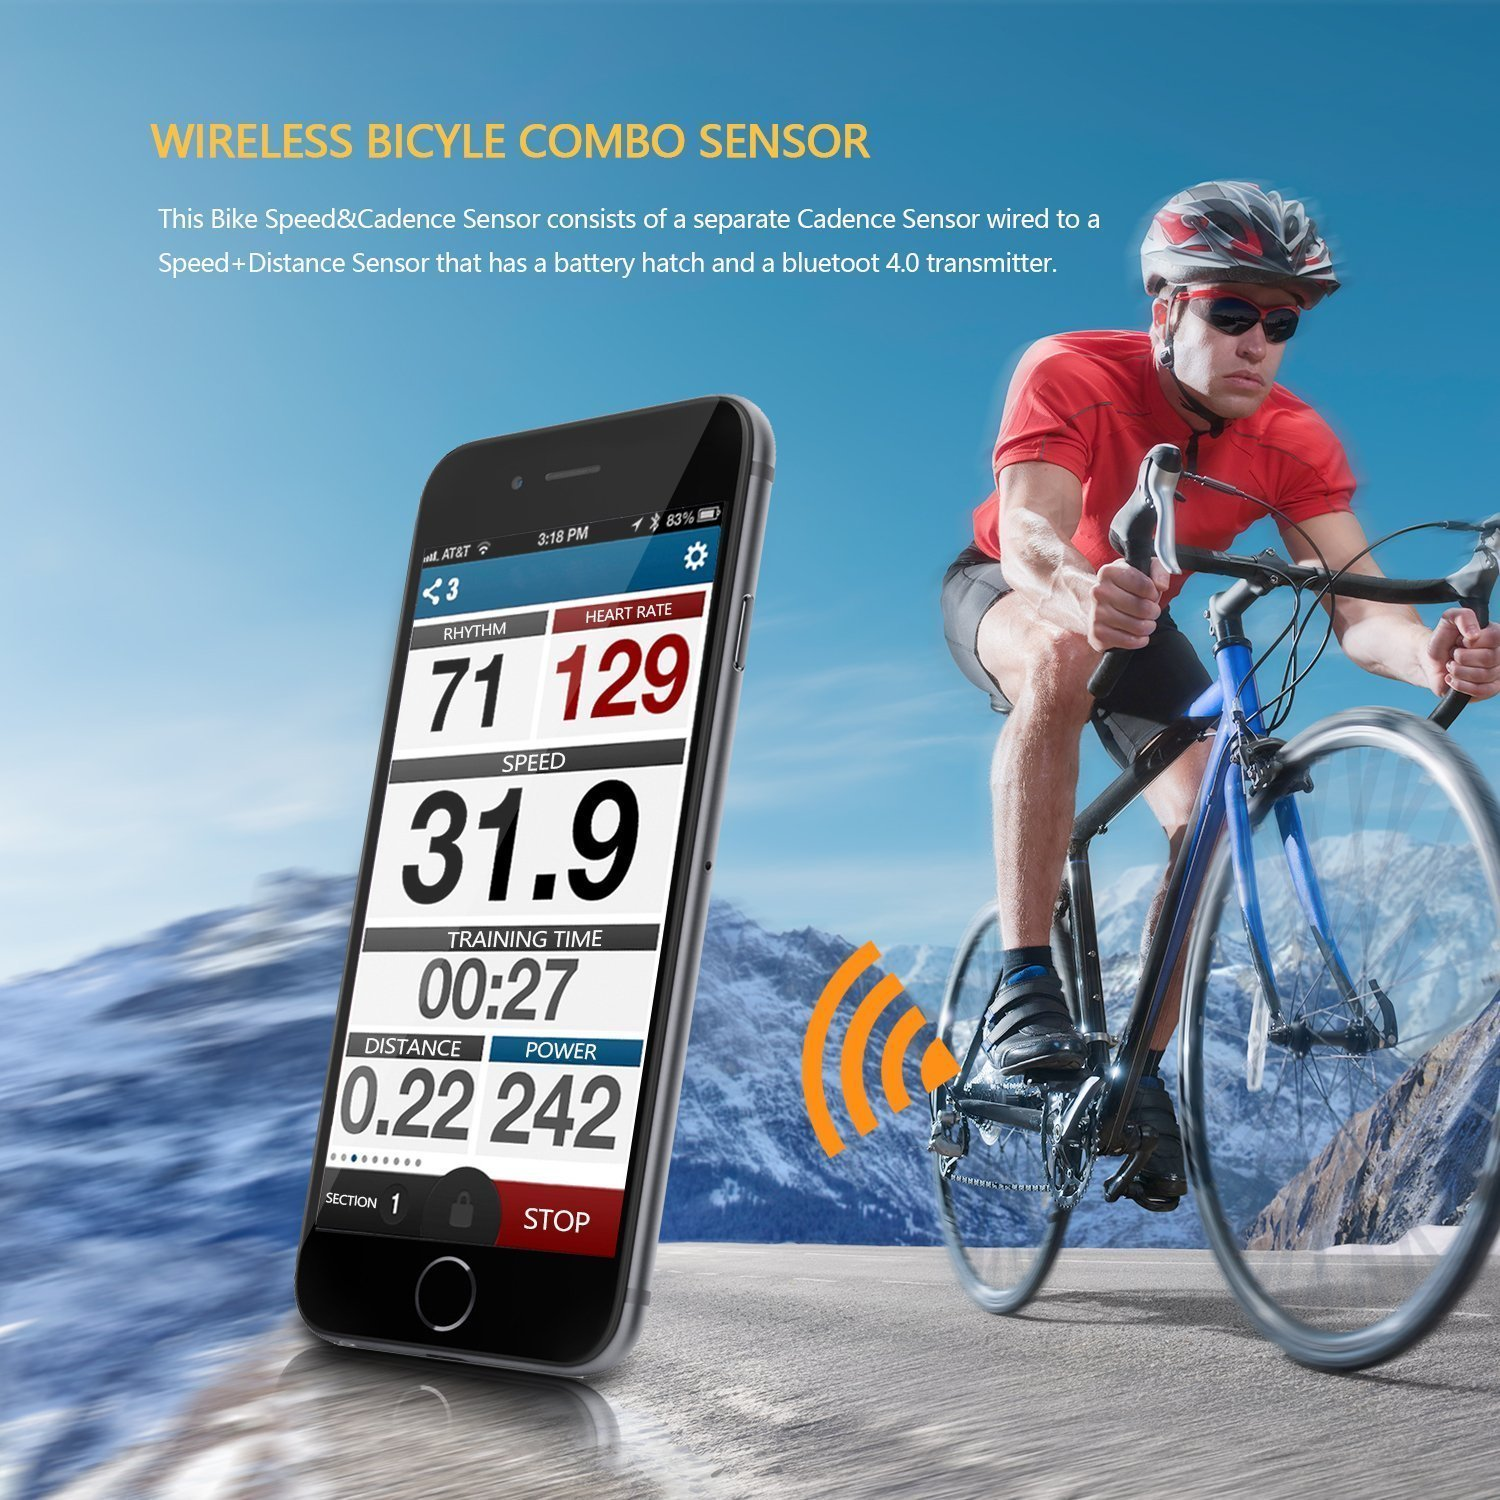 Onlydroid Bike Speed Cadence Sensor, Wireless Bluetooth ANT+ Fitness Tracker Speedmeter for iPhone iPad Wahoo Fitness Strava MapMyRide by Onlydroid (Image #7)